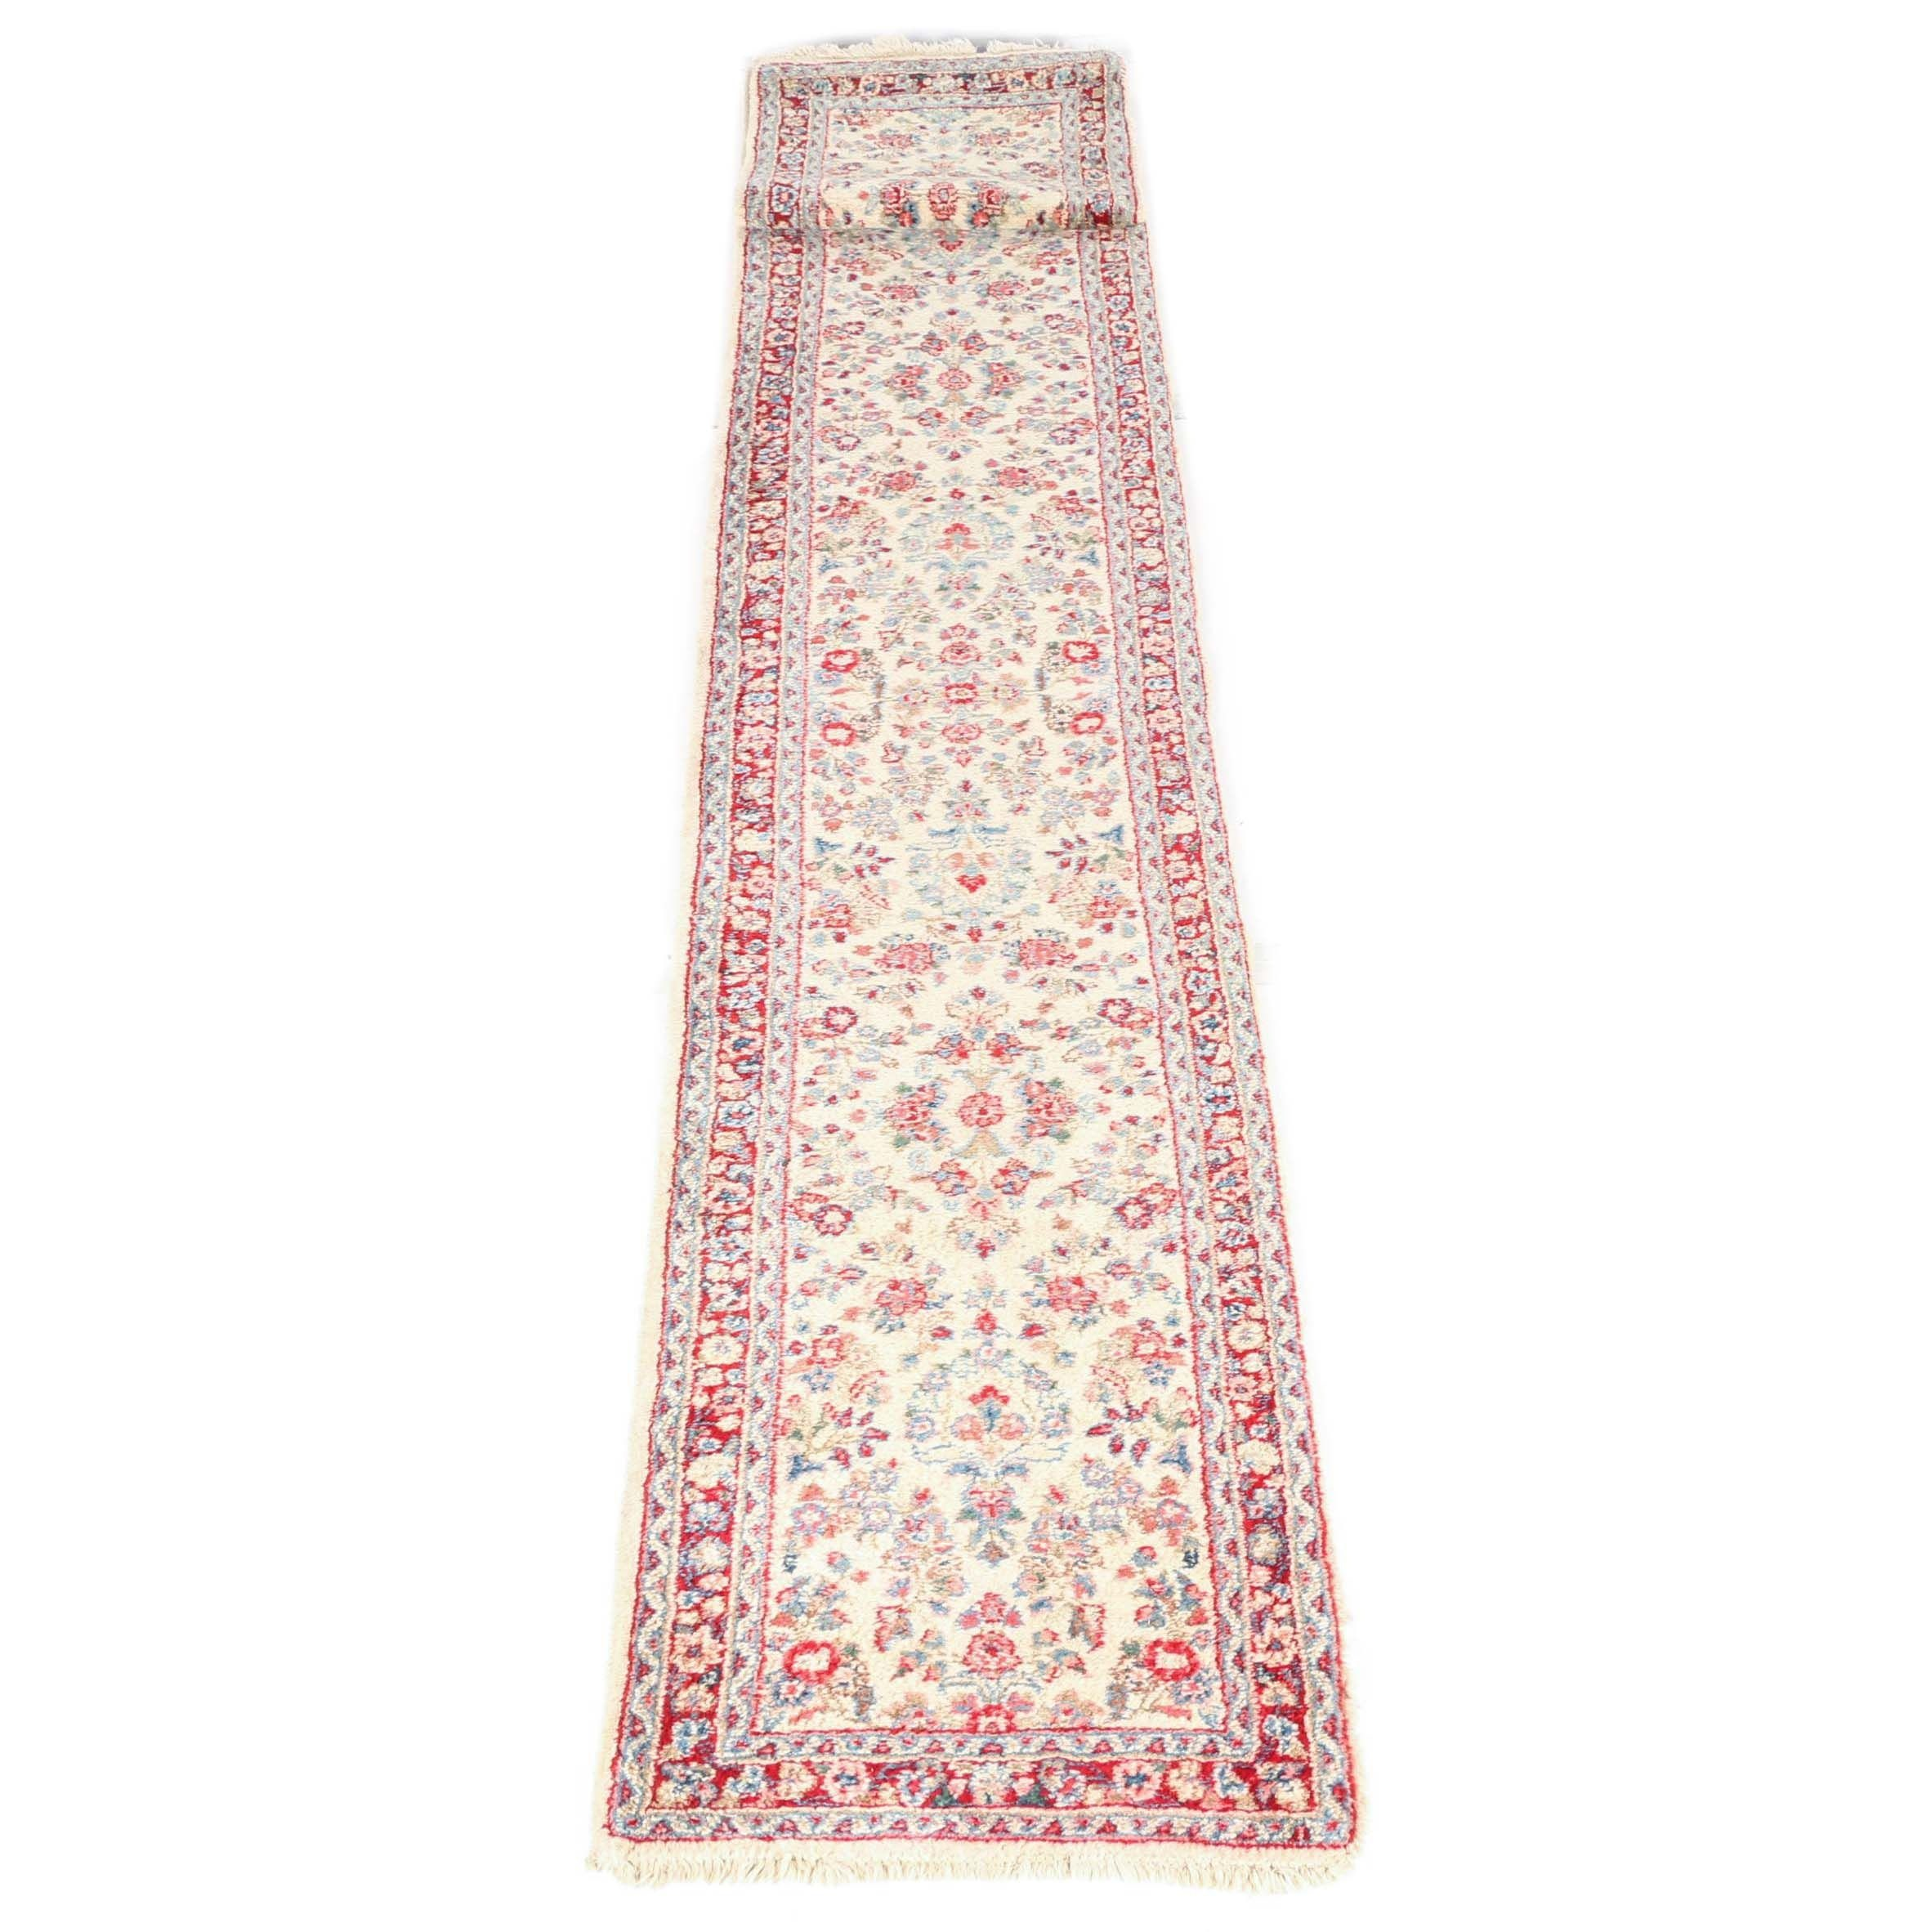 Hand-Knotted Indo-Persian Runner